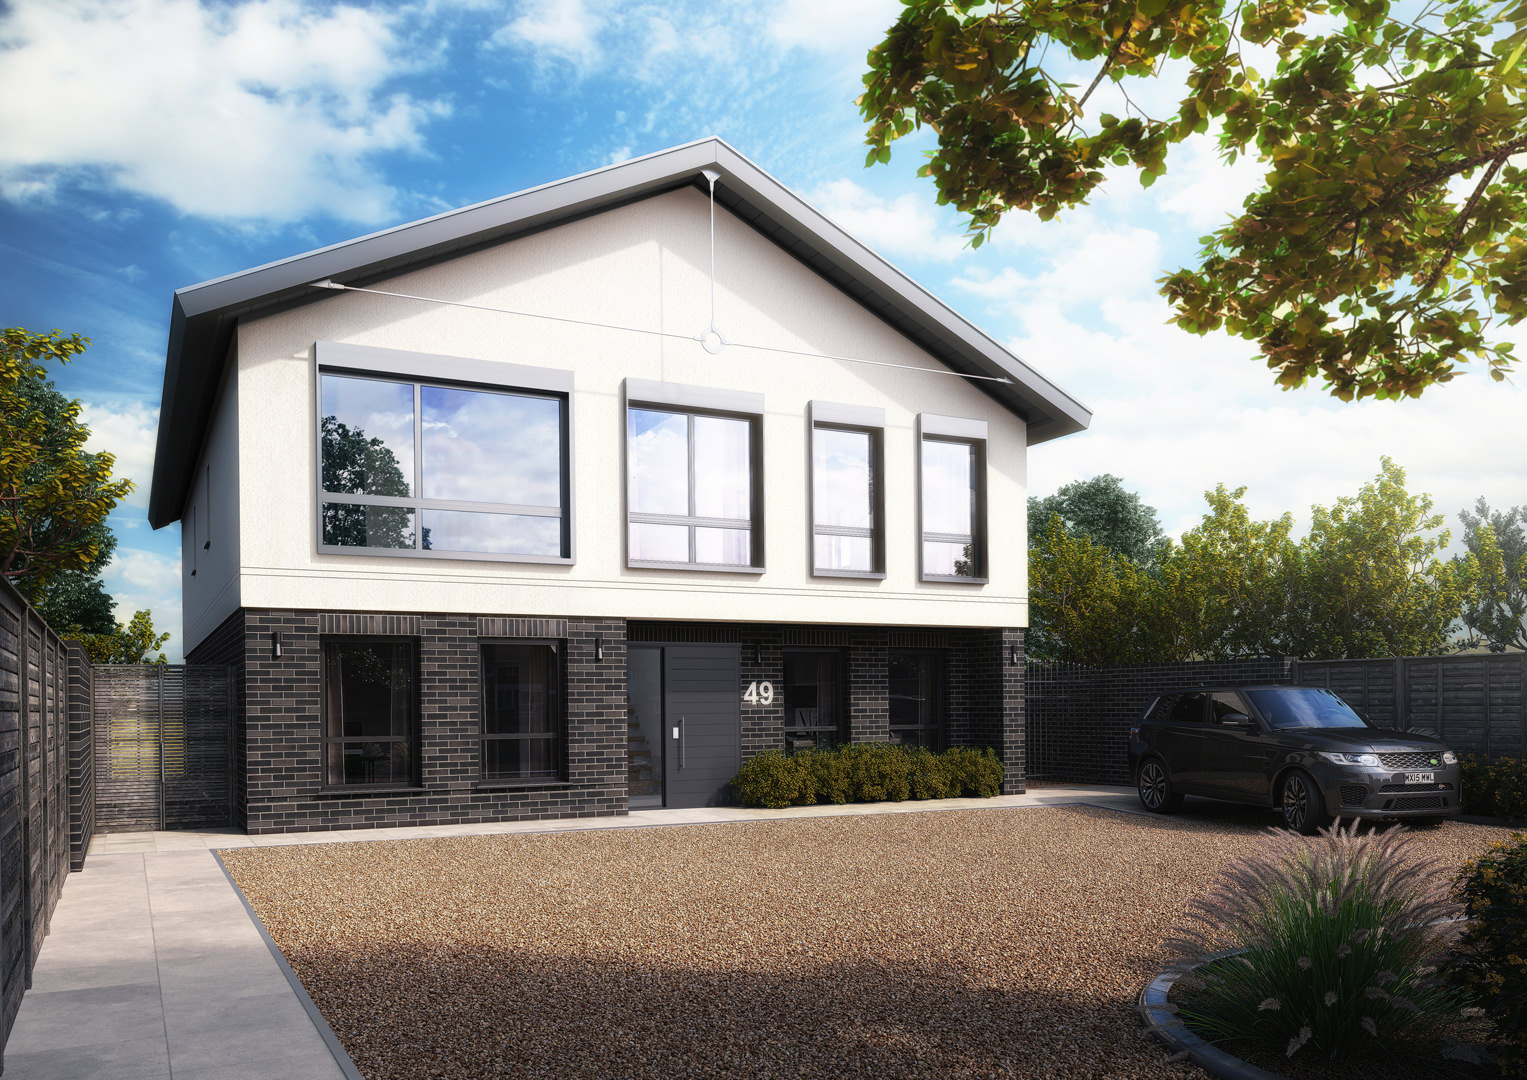 A demolition and new build project for a self builder creating a large 4 bedroom dwelling with the highest passivhaus and multi comfort home accreditation